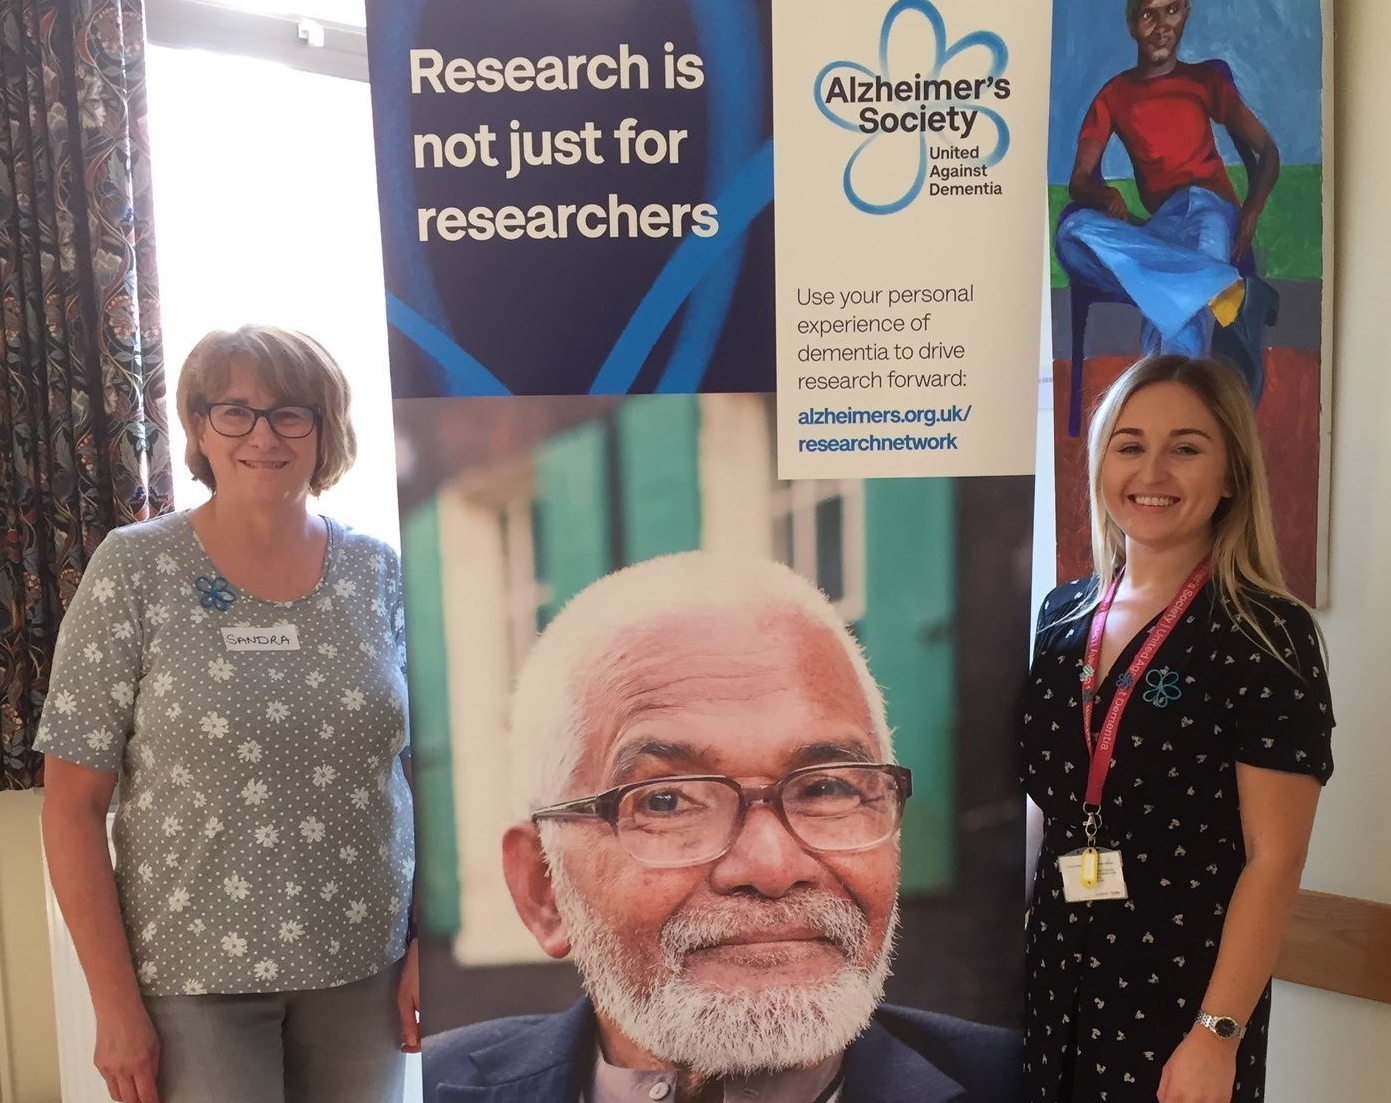 Research Network volunteers at event